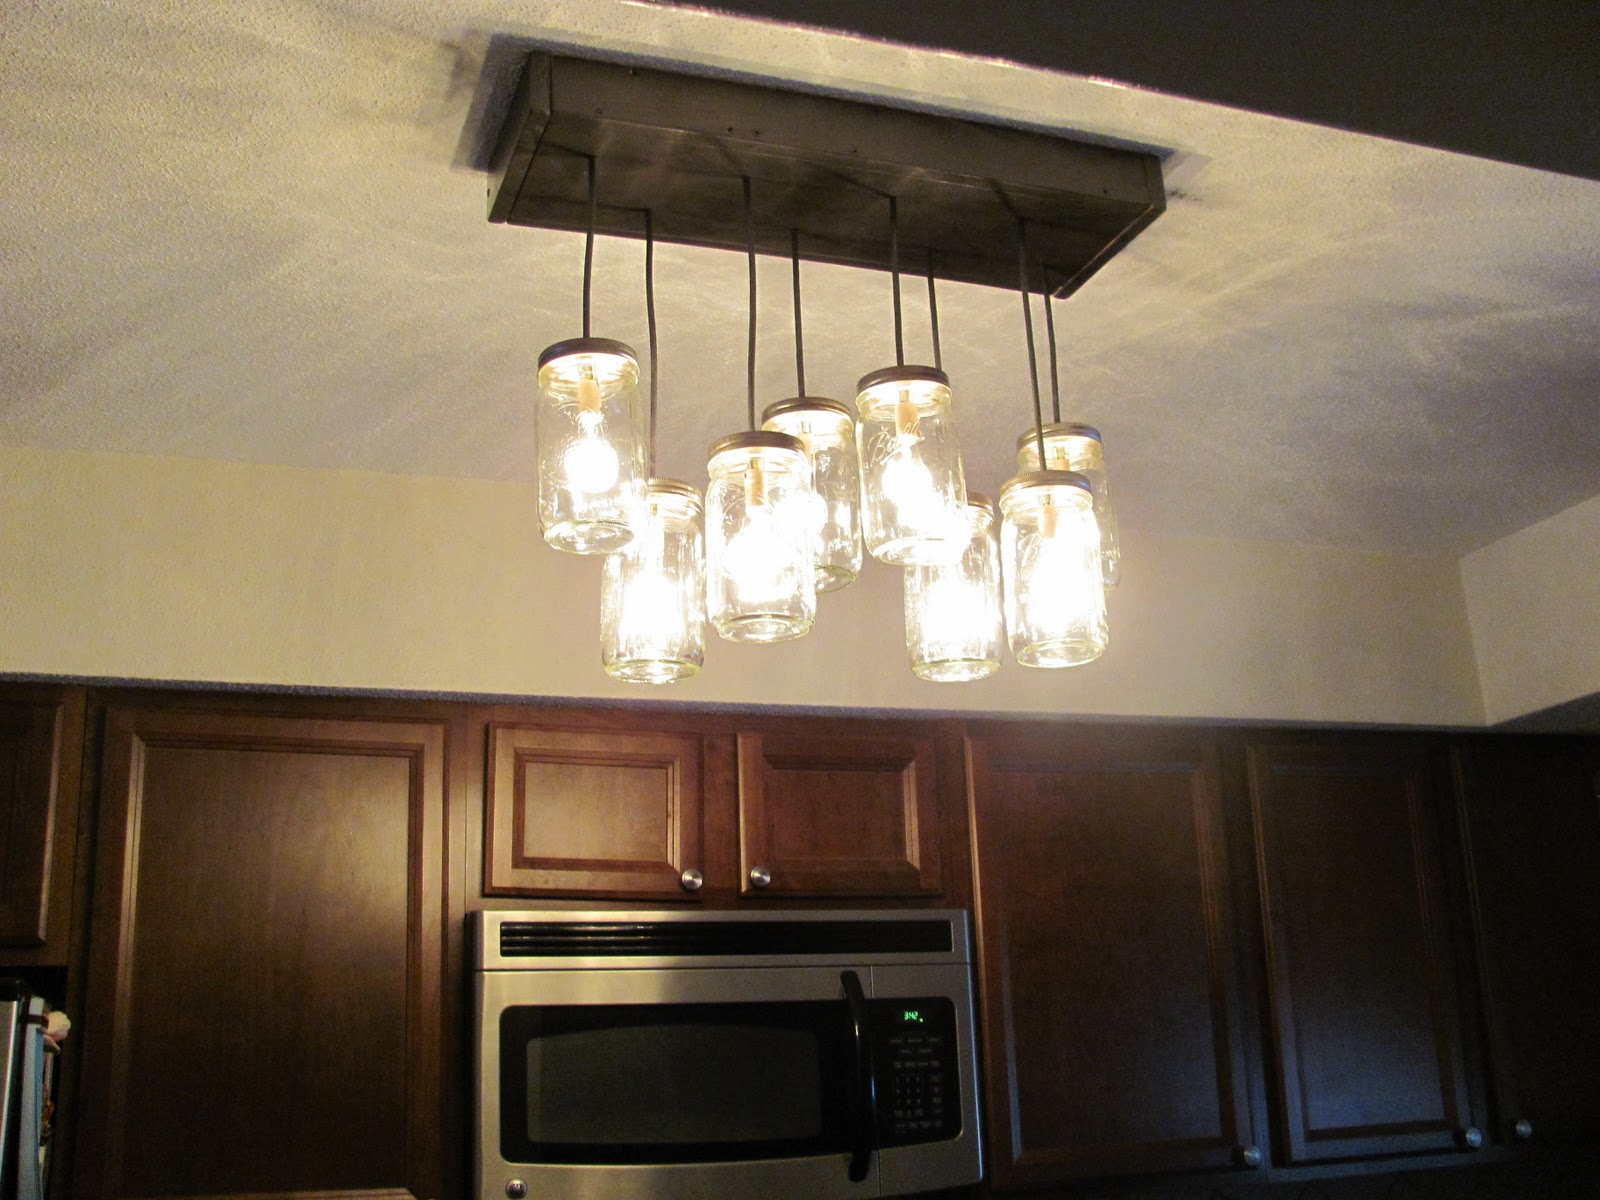 Find The Uniqueness And Breathtaking Home Lighting By Installing Mason Jar Lighting Fixtures